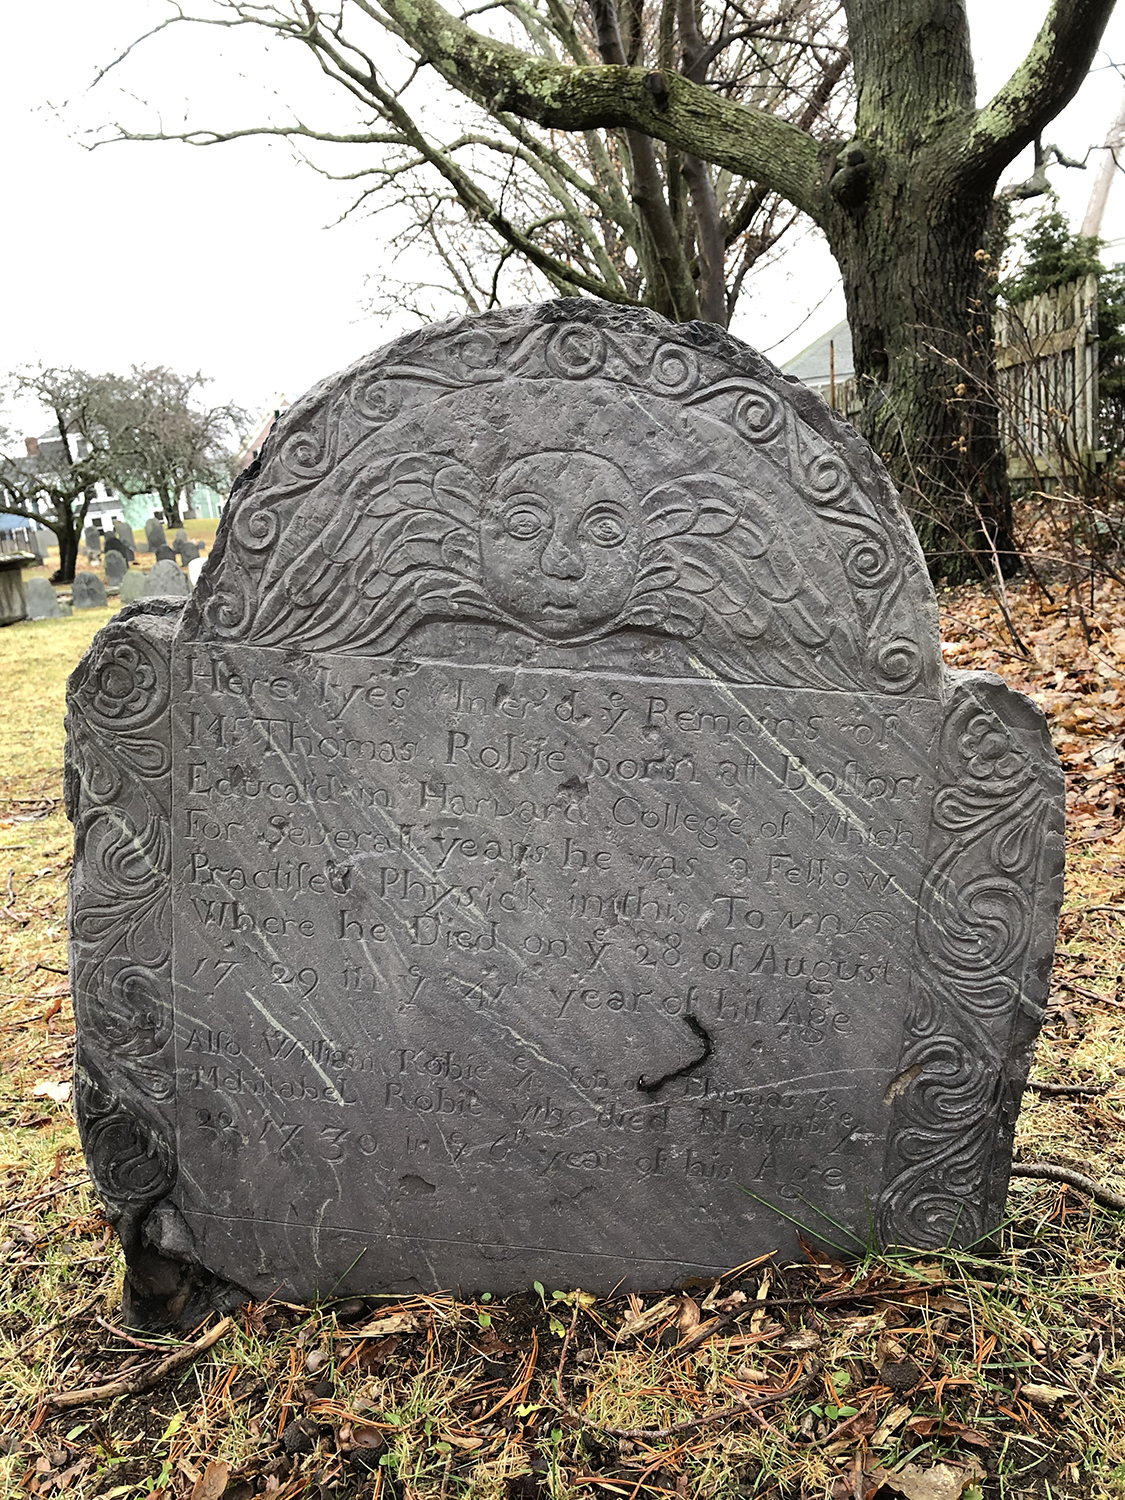 Photograph of the Thomas Robie 1729 grave marker in historic Broad Street Cemetery in Salem, Massachusetts